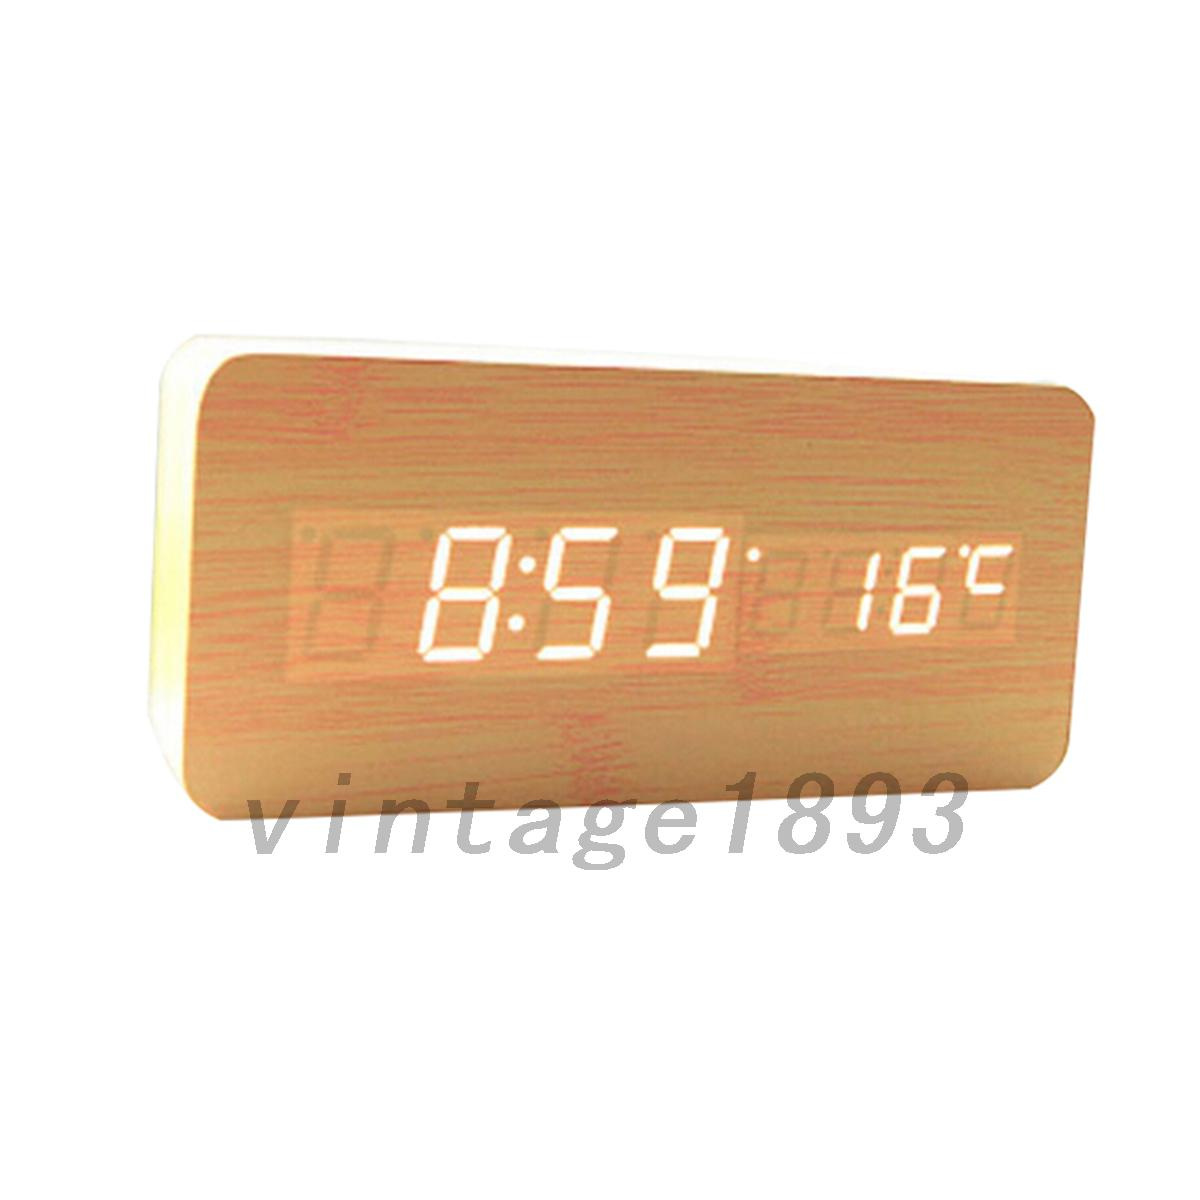 digital wanduhr uhr wecker stranduhr uhr holz mdf mit led ziffern thermometer ebay. Black Bedroom Furniture Sets. Home Design Ideas